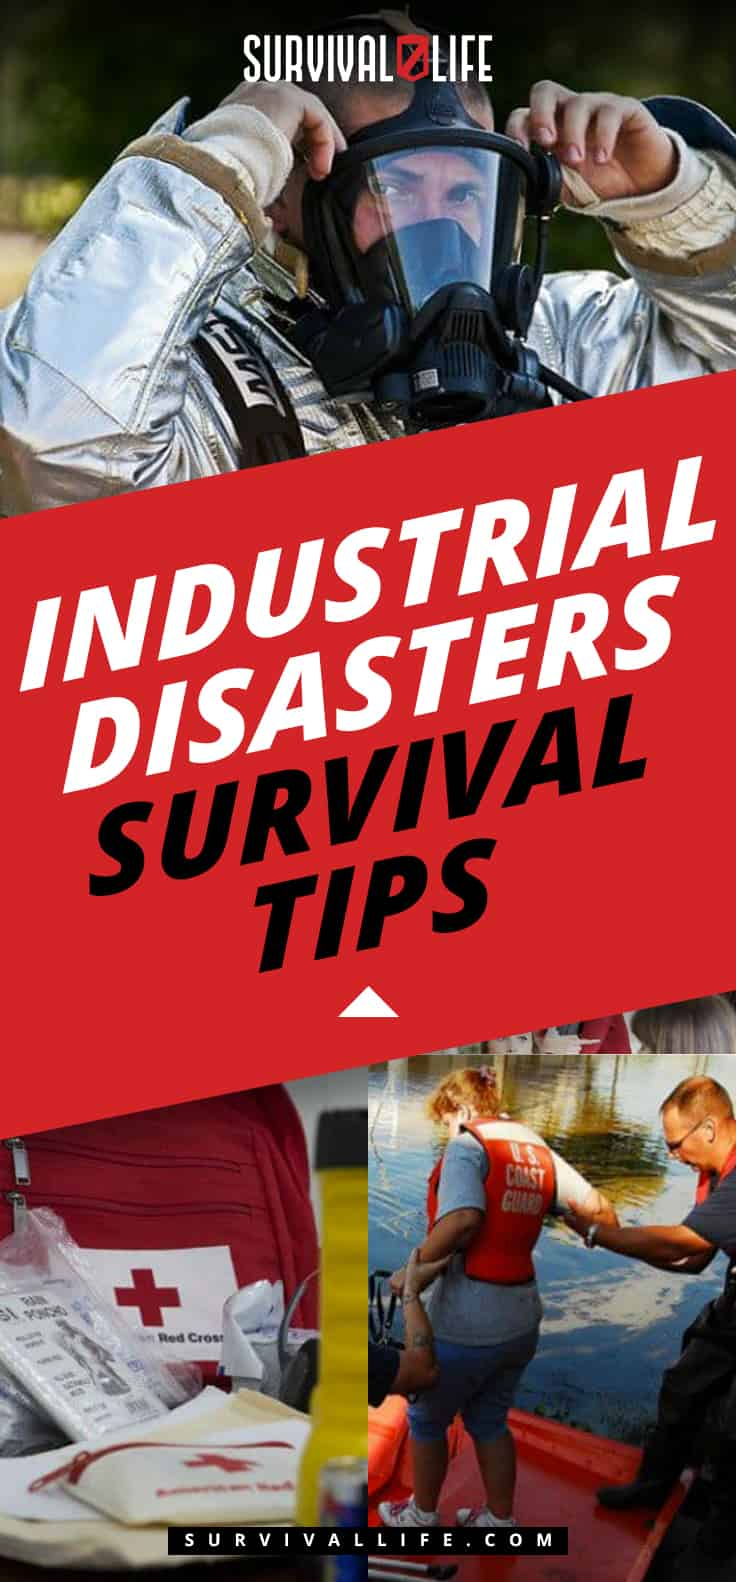 Industrial Disasters Survival Tips | Survival Life